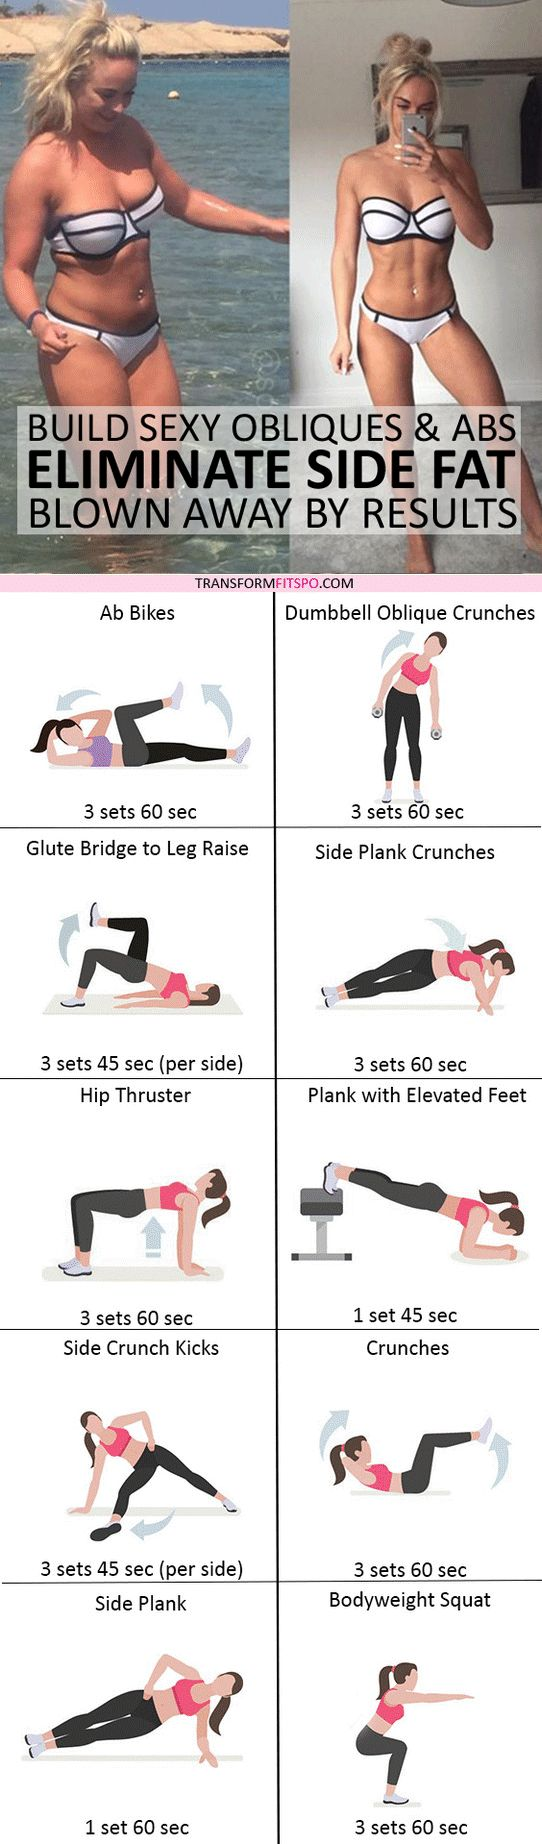 #womensworkout #workout #femalefitness Repin and share if this workout destroyed your side fat! Click the pin for the full workout.